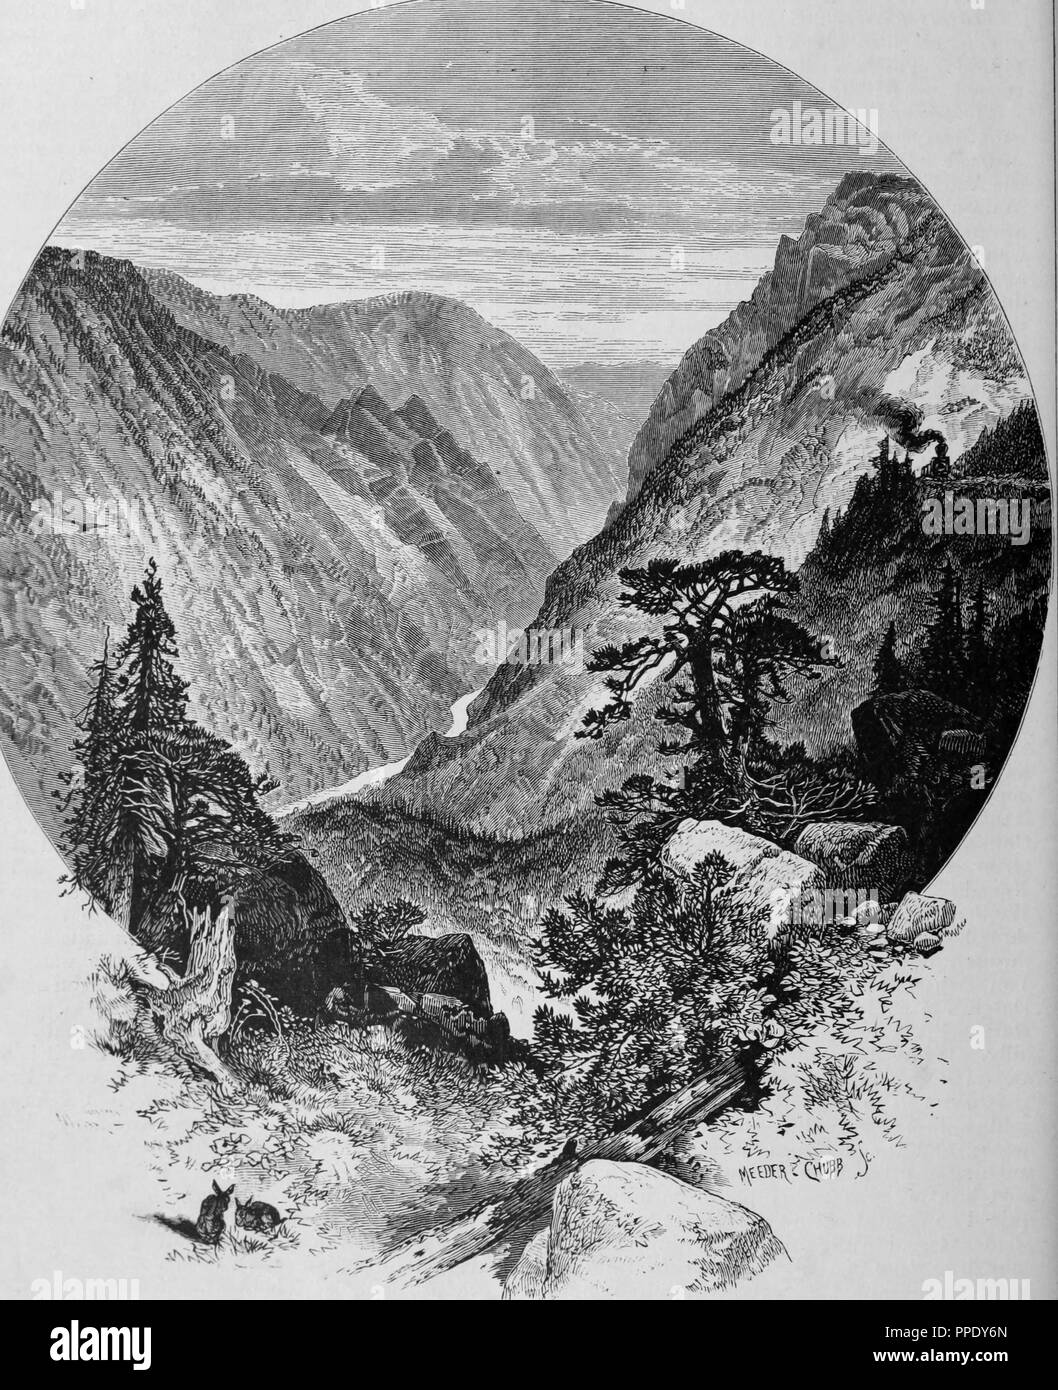 Engraving of the Giant's Gap in the American River Canyon, from the book 'The Pacific tourist', 1877. Courtesy Internet Archive. () - Stock Image